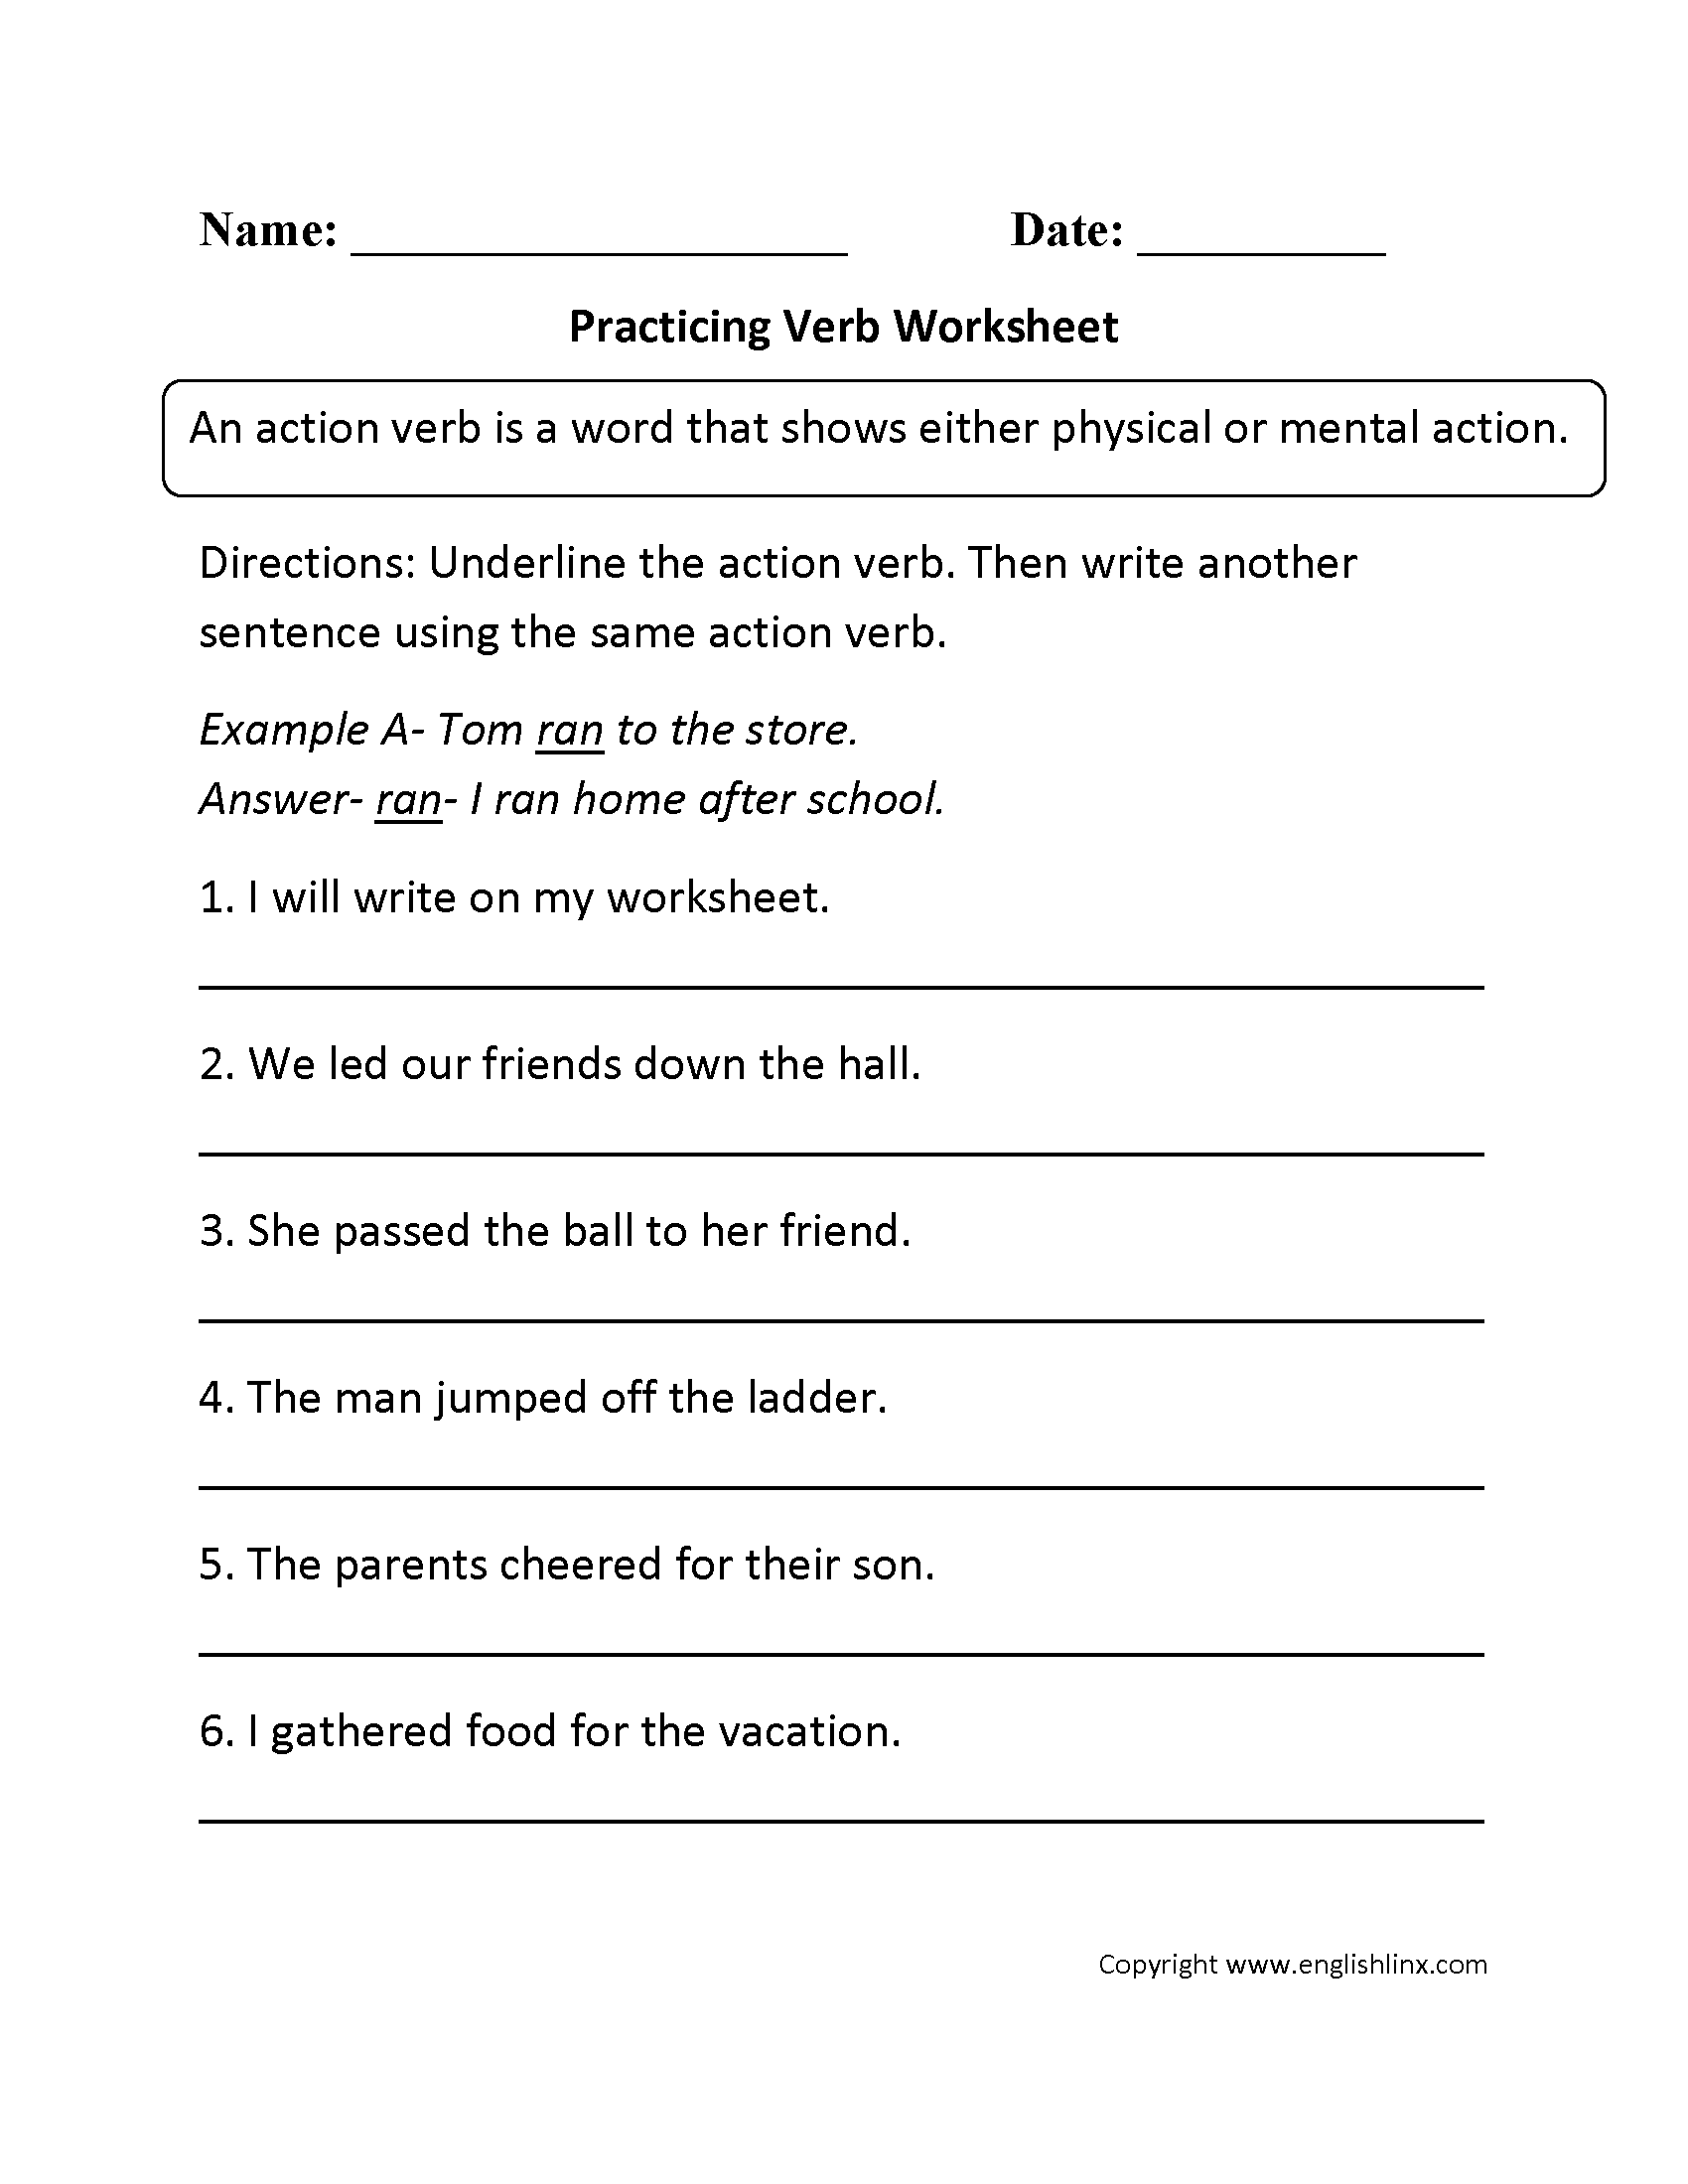 Worksheet Of Punctuation For Grade 3